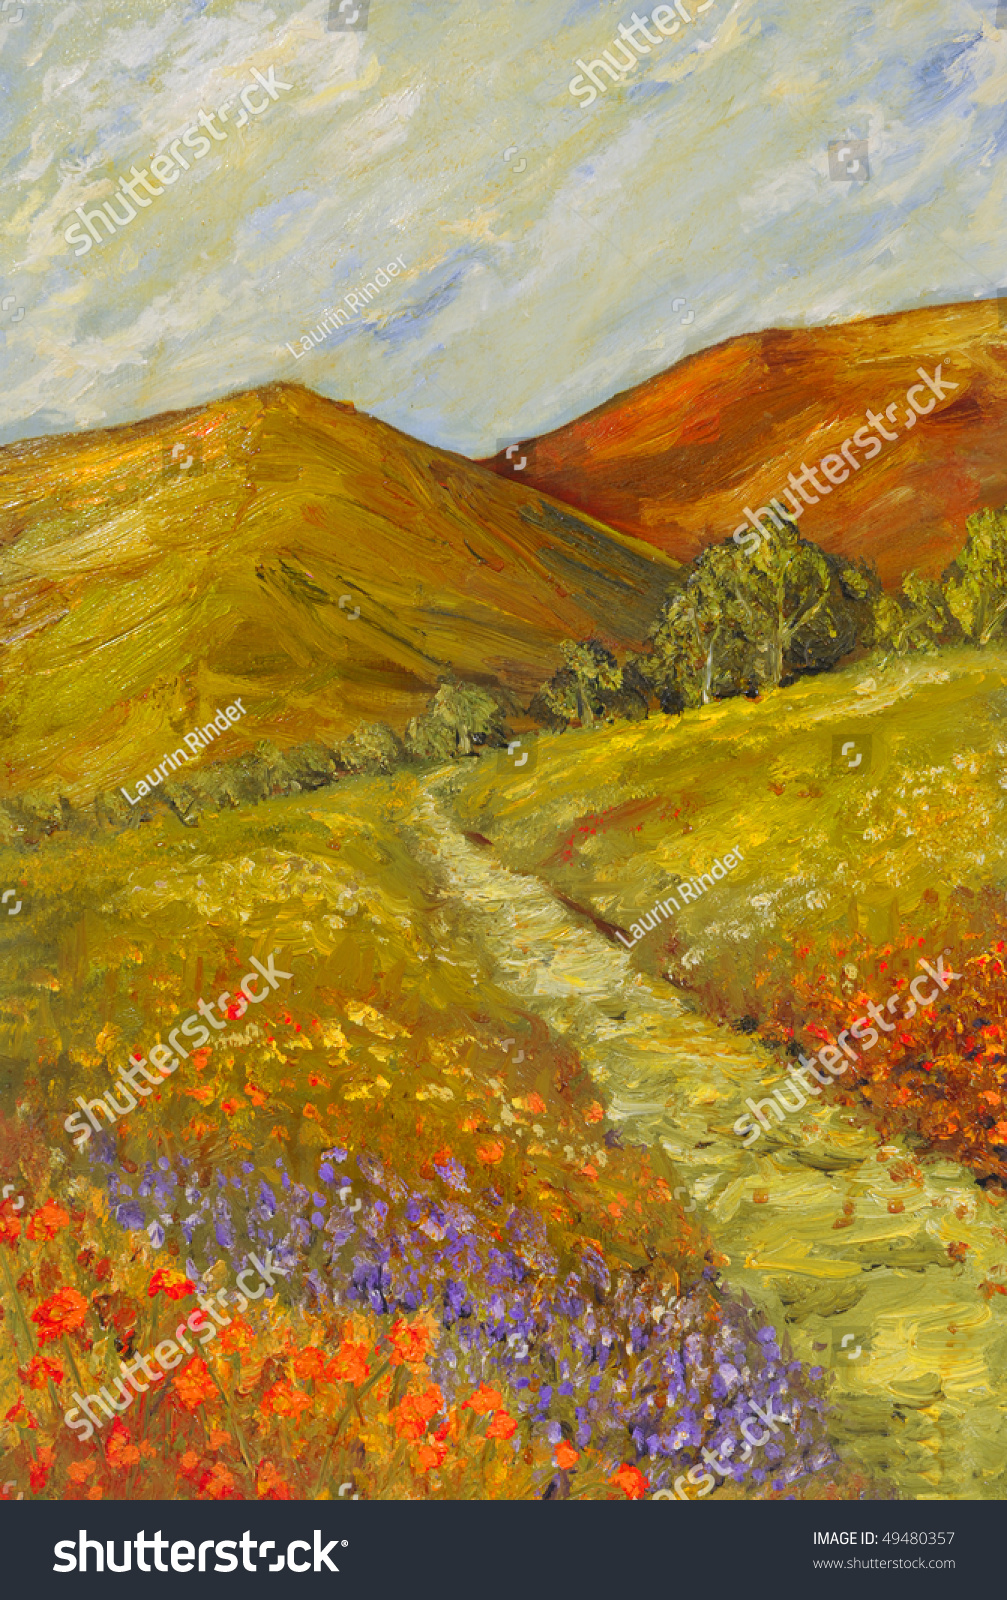 Aliexpress.com : Buy Nice autumn landscape handpainted oil ...